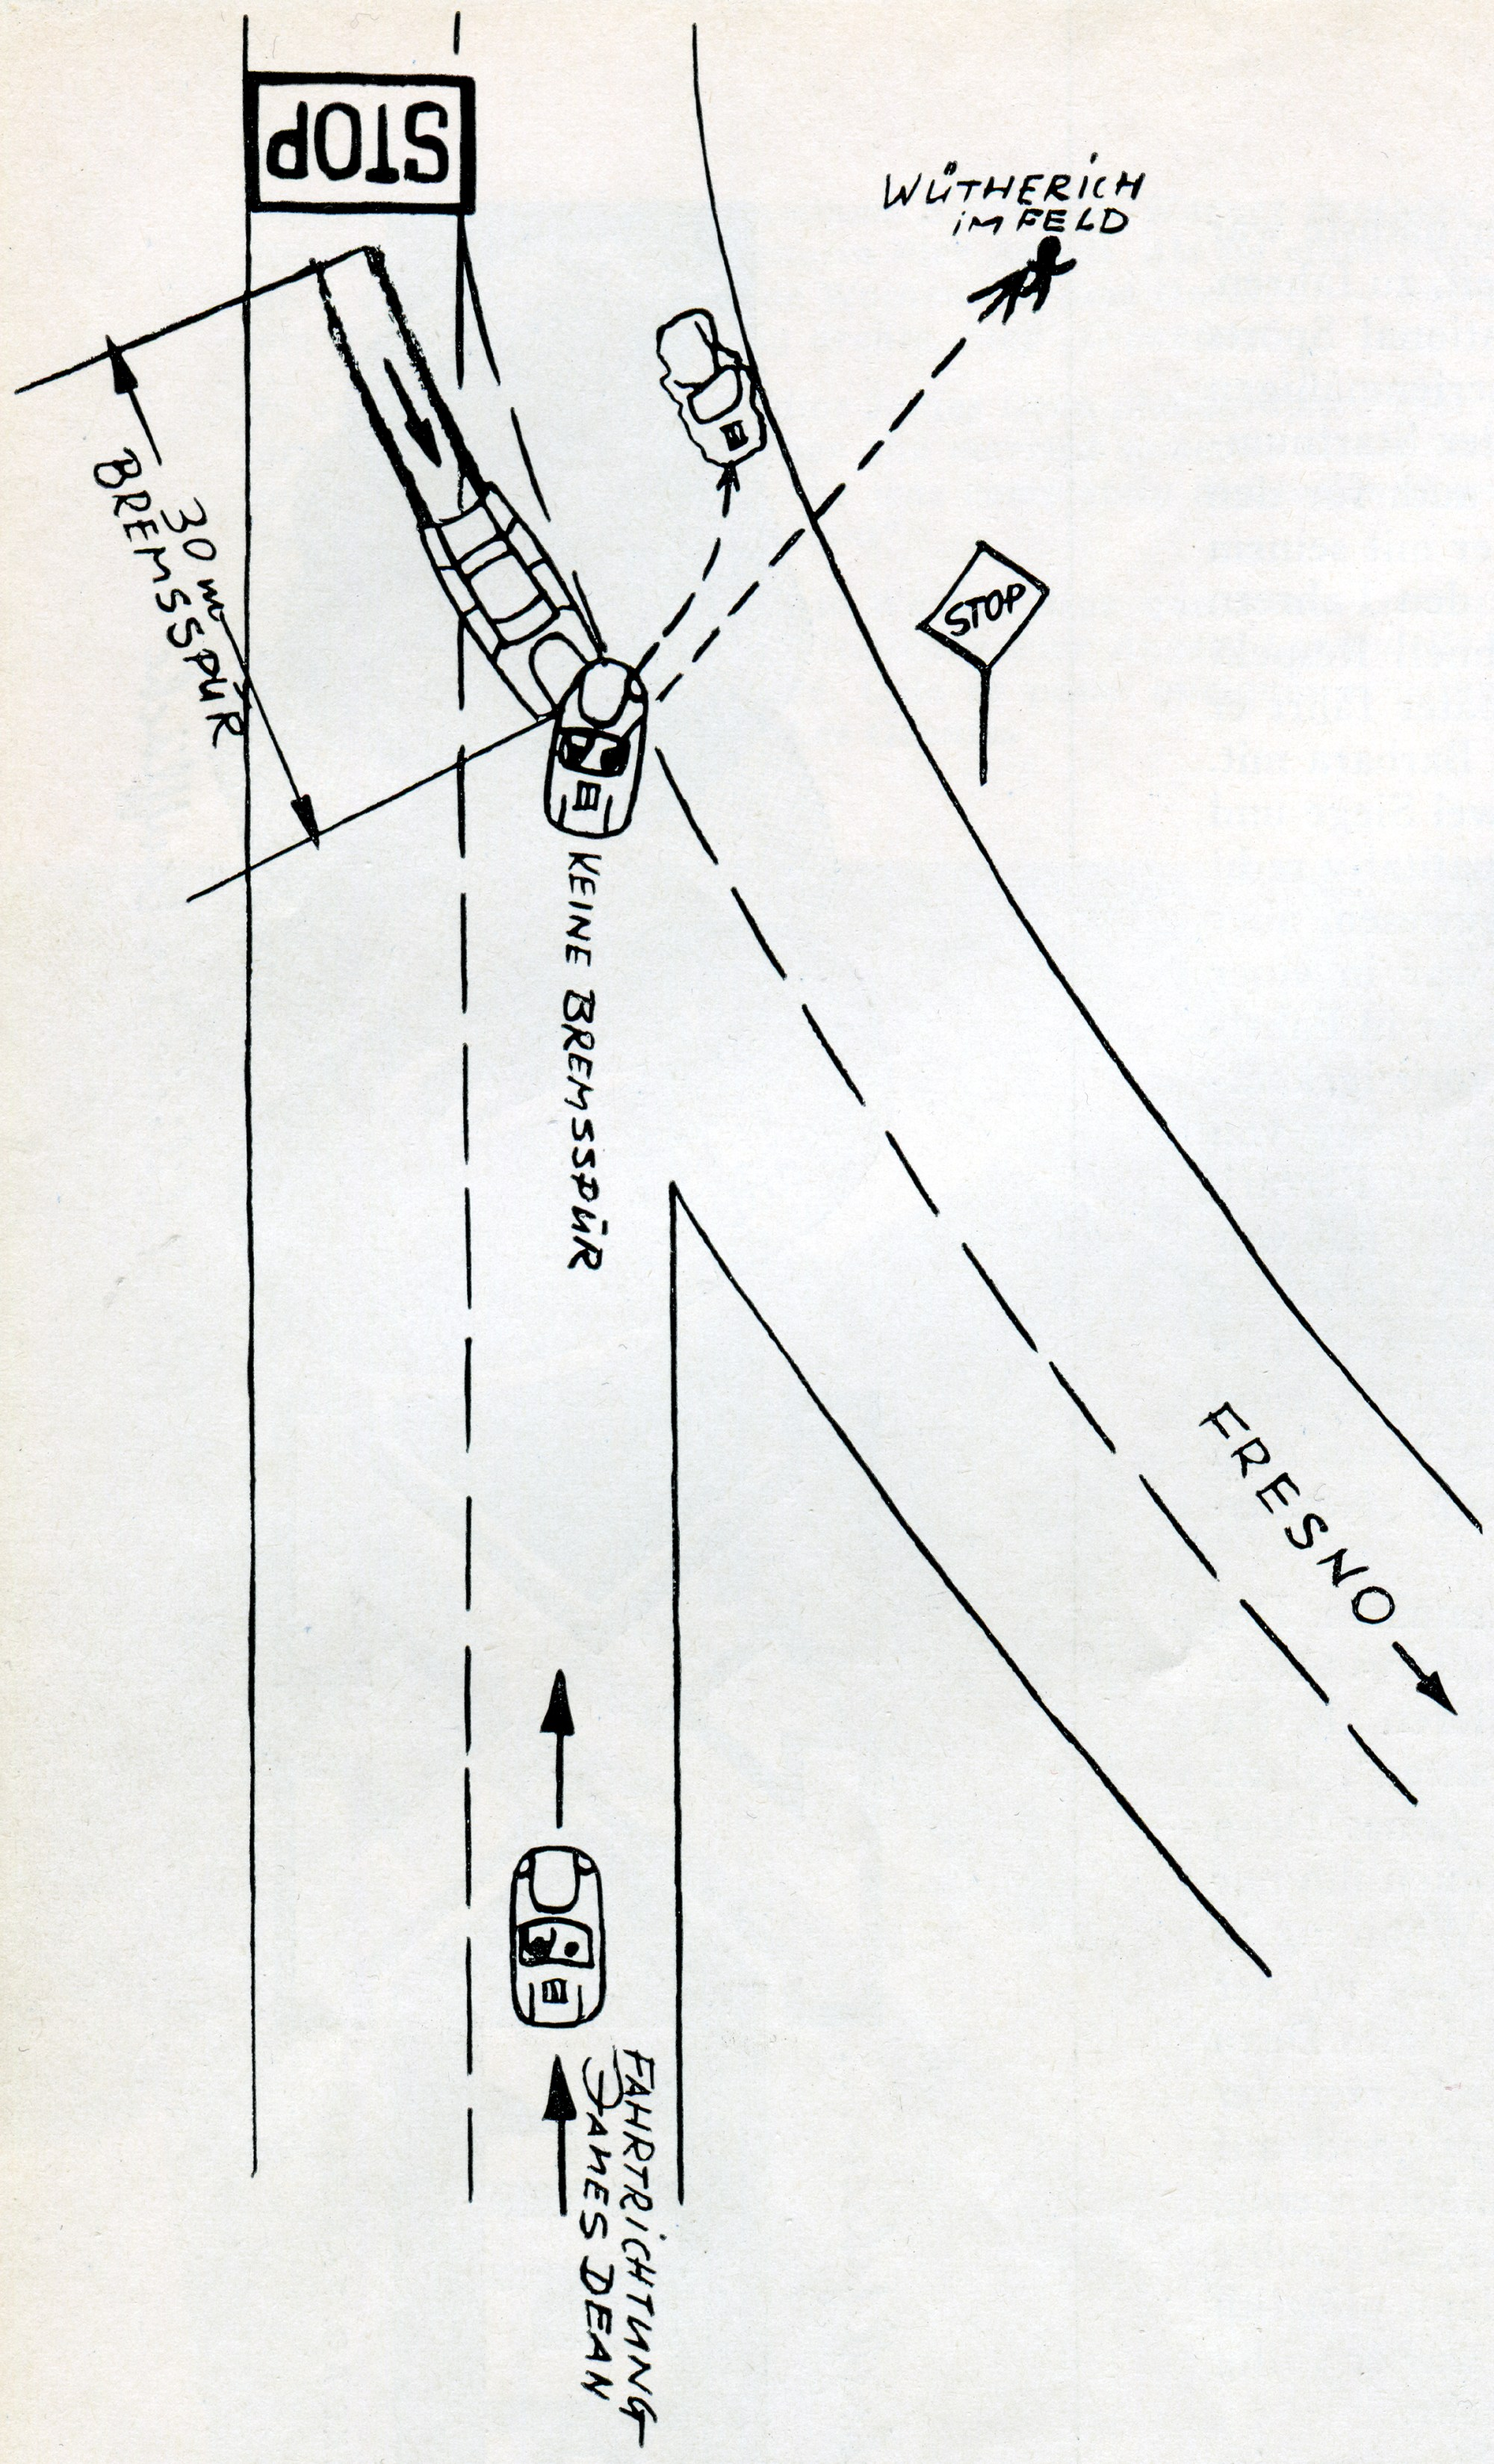 hight resolution of direction and position of the vehicles in the collision shown in a hand drawn sketch by rolf w therich click to enlarge